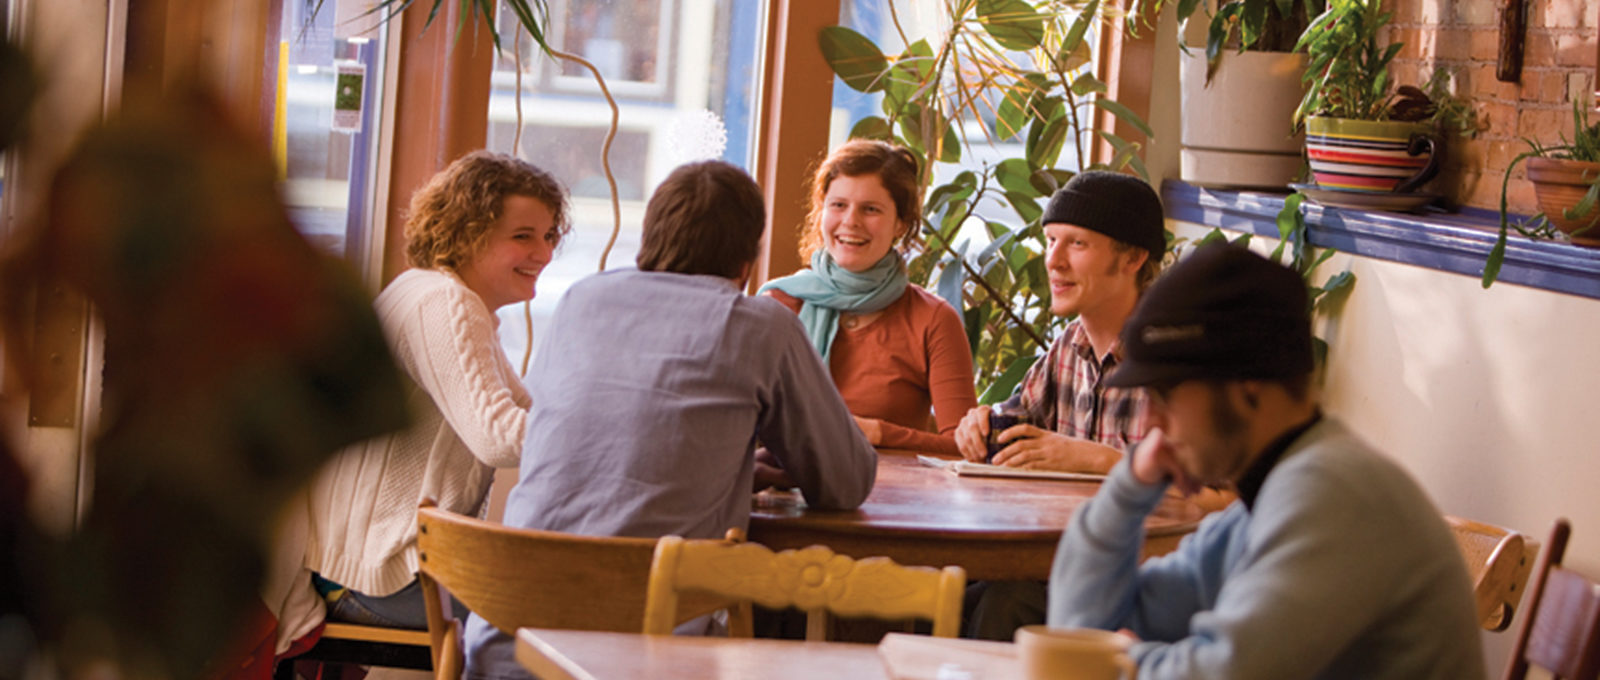 Students at Black Cat Coffeehouse